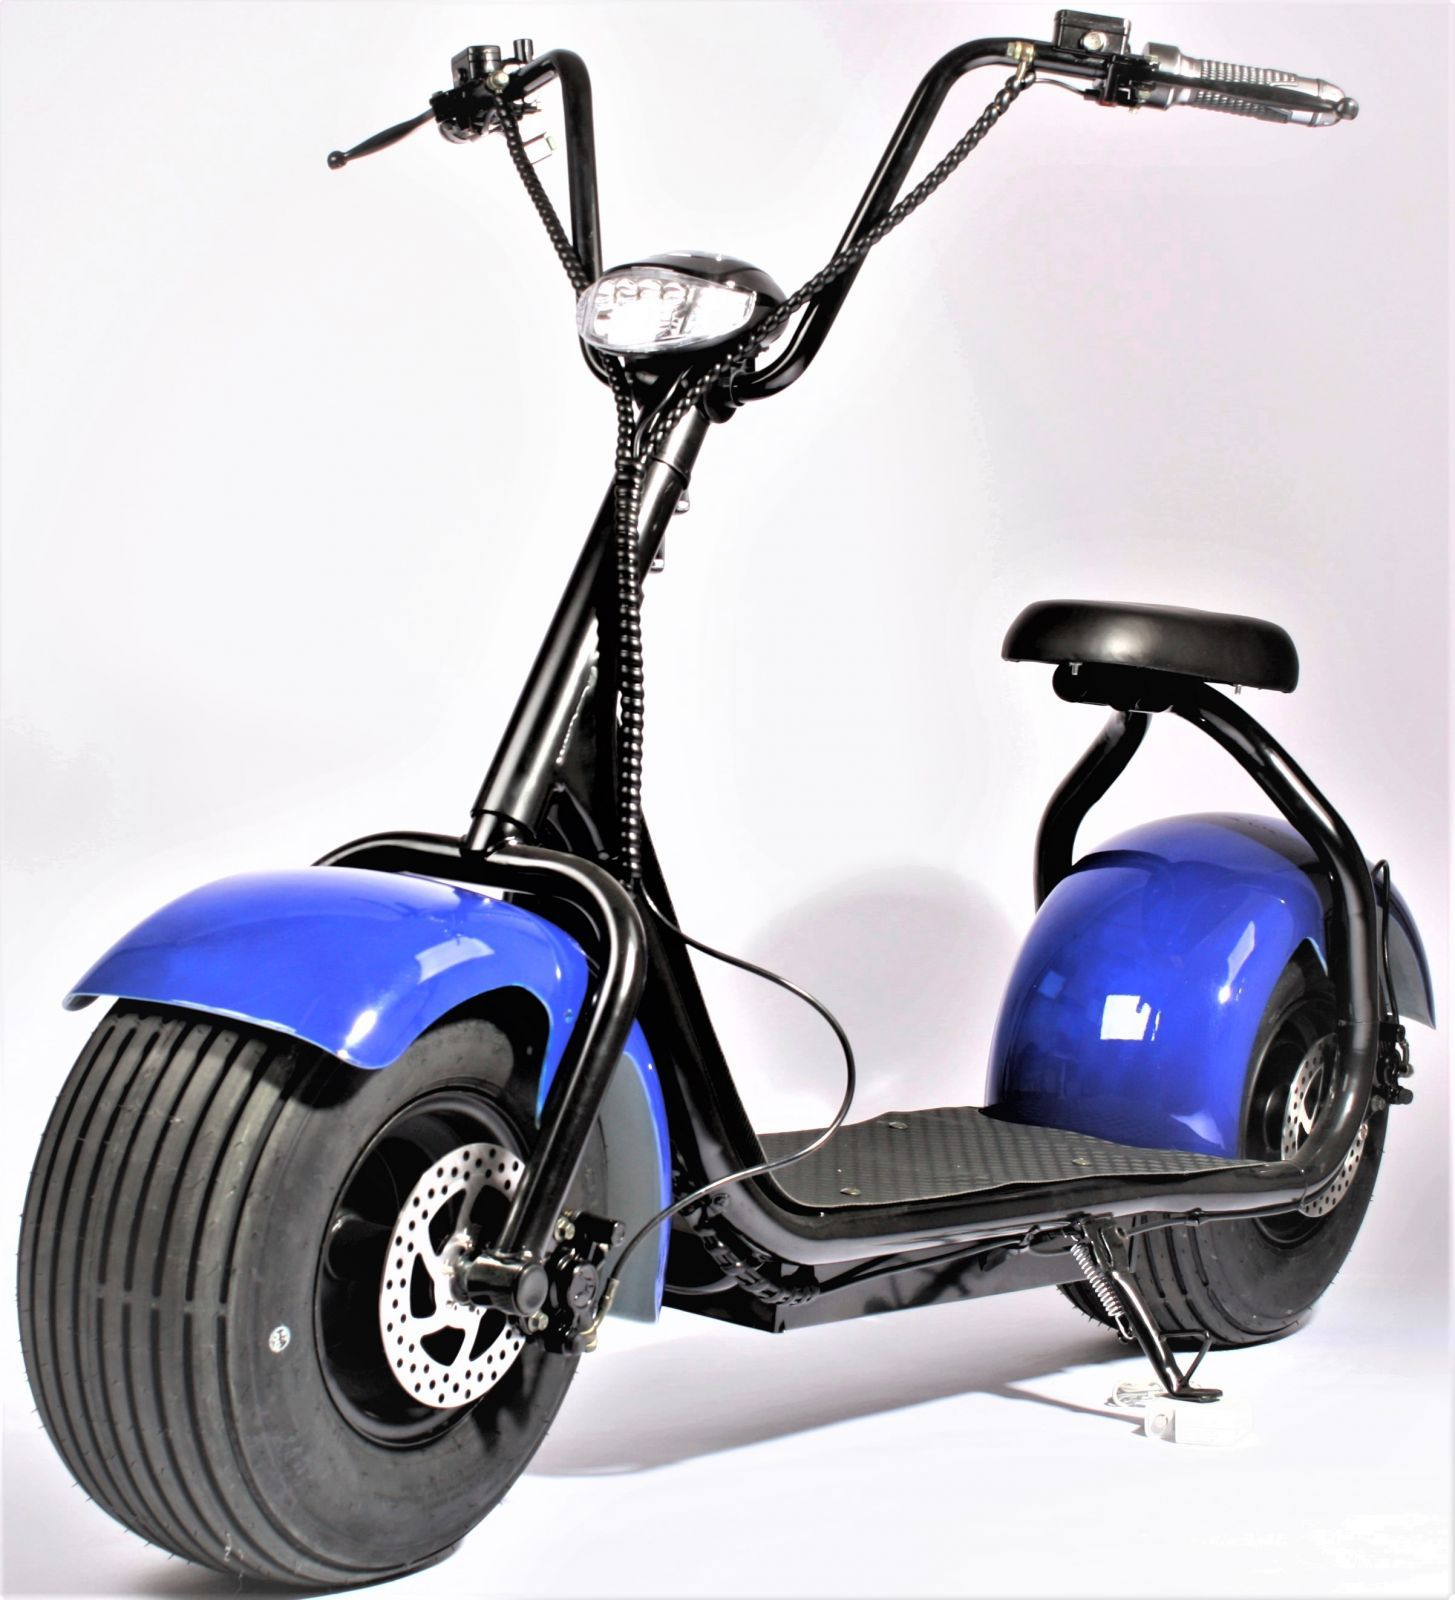 kolobezka-elektrokolobezka-eco-highway-scooter